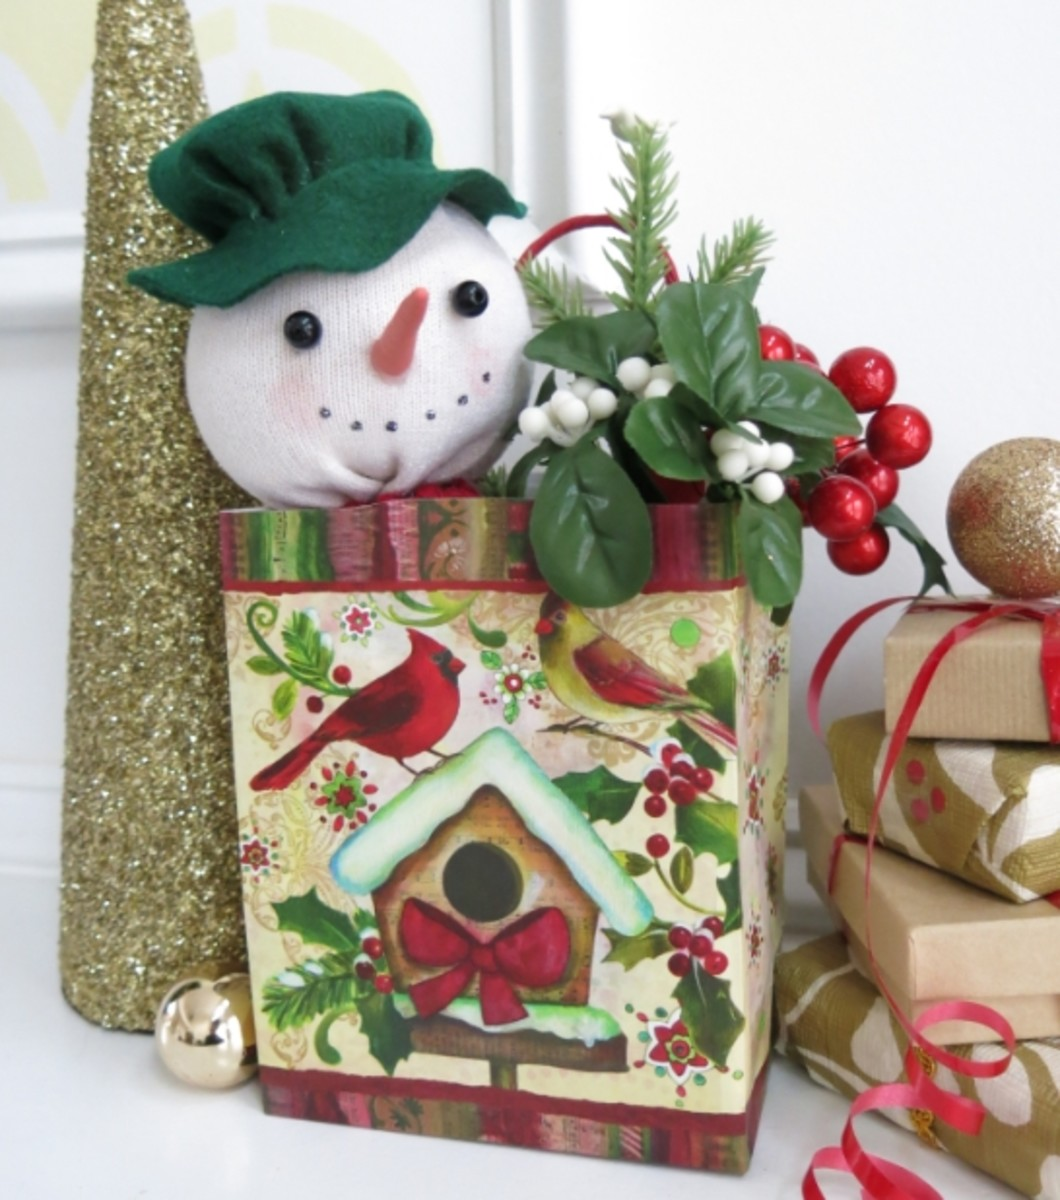 How to Make a Gift Bag Sock Snowman